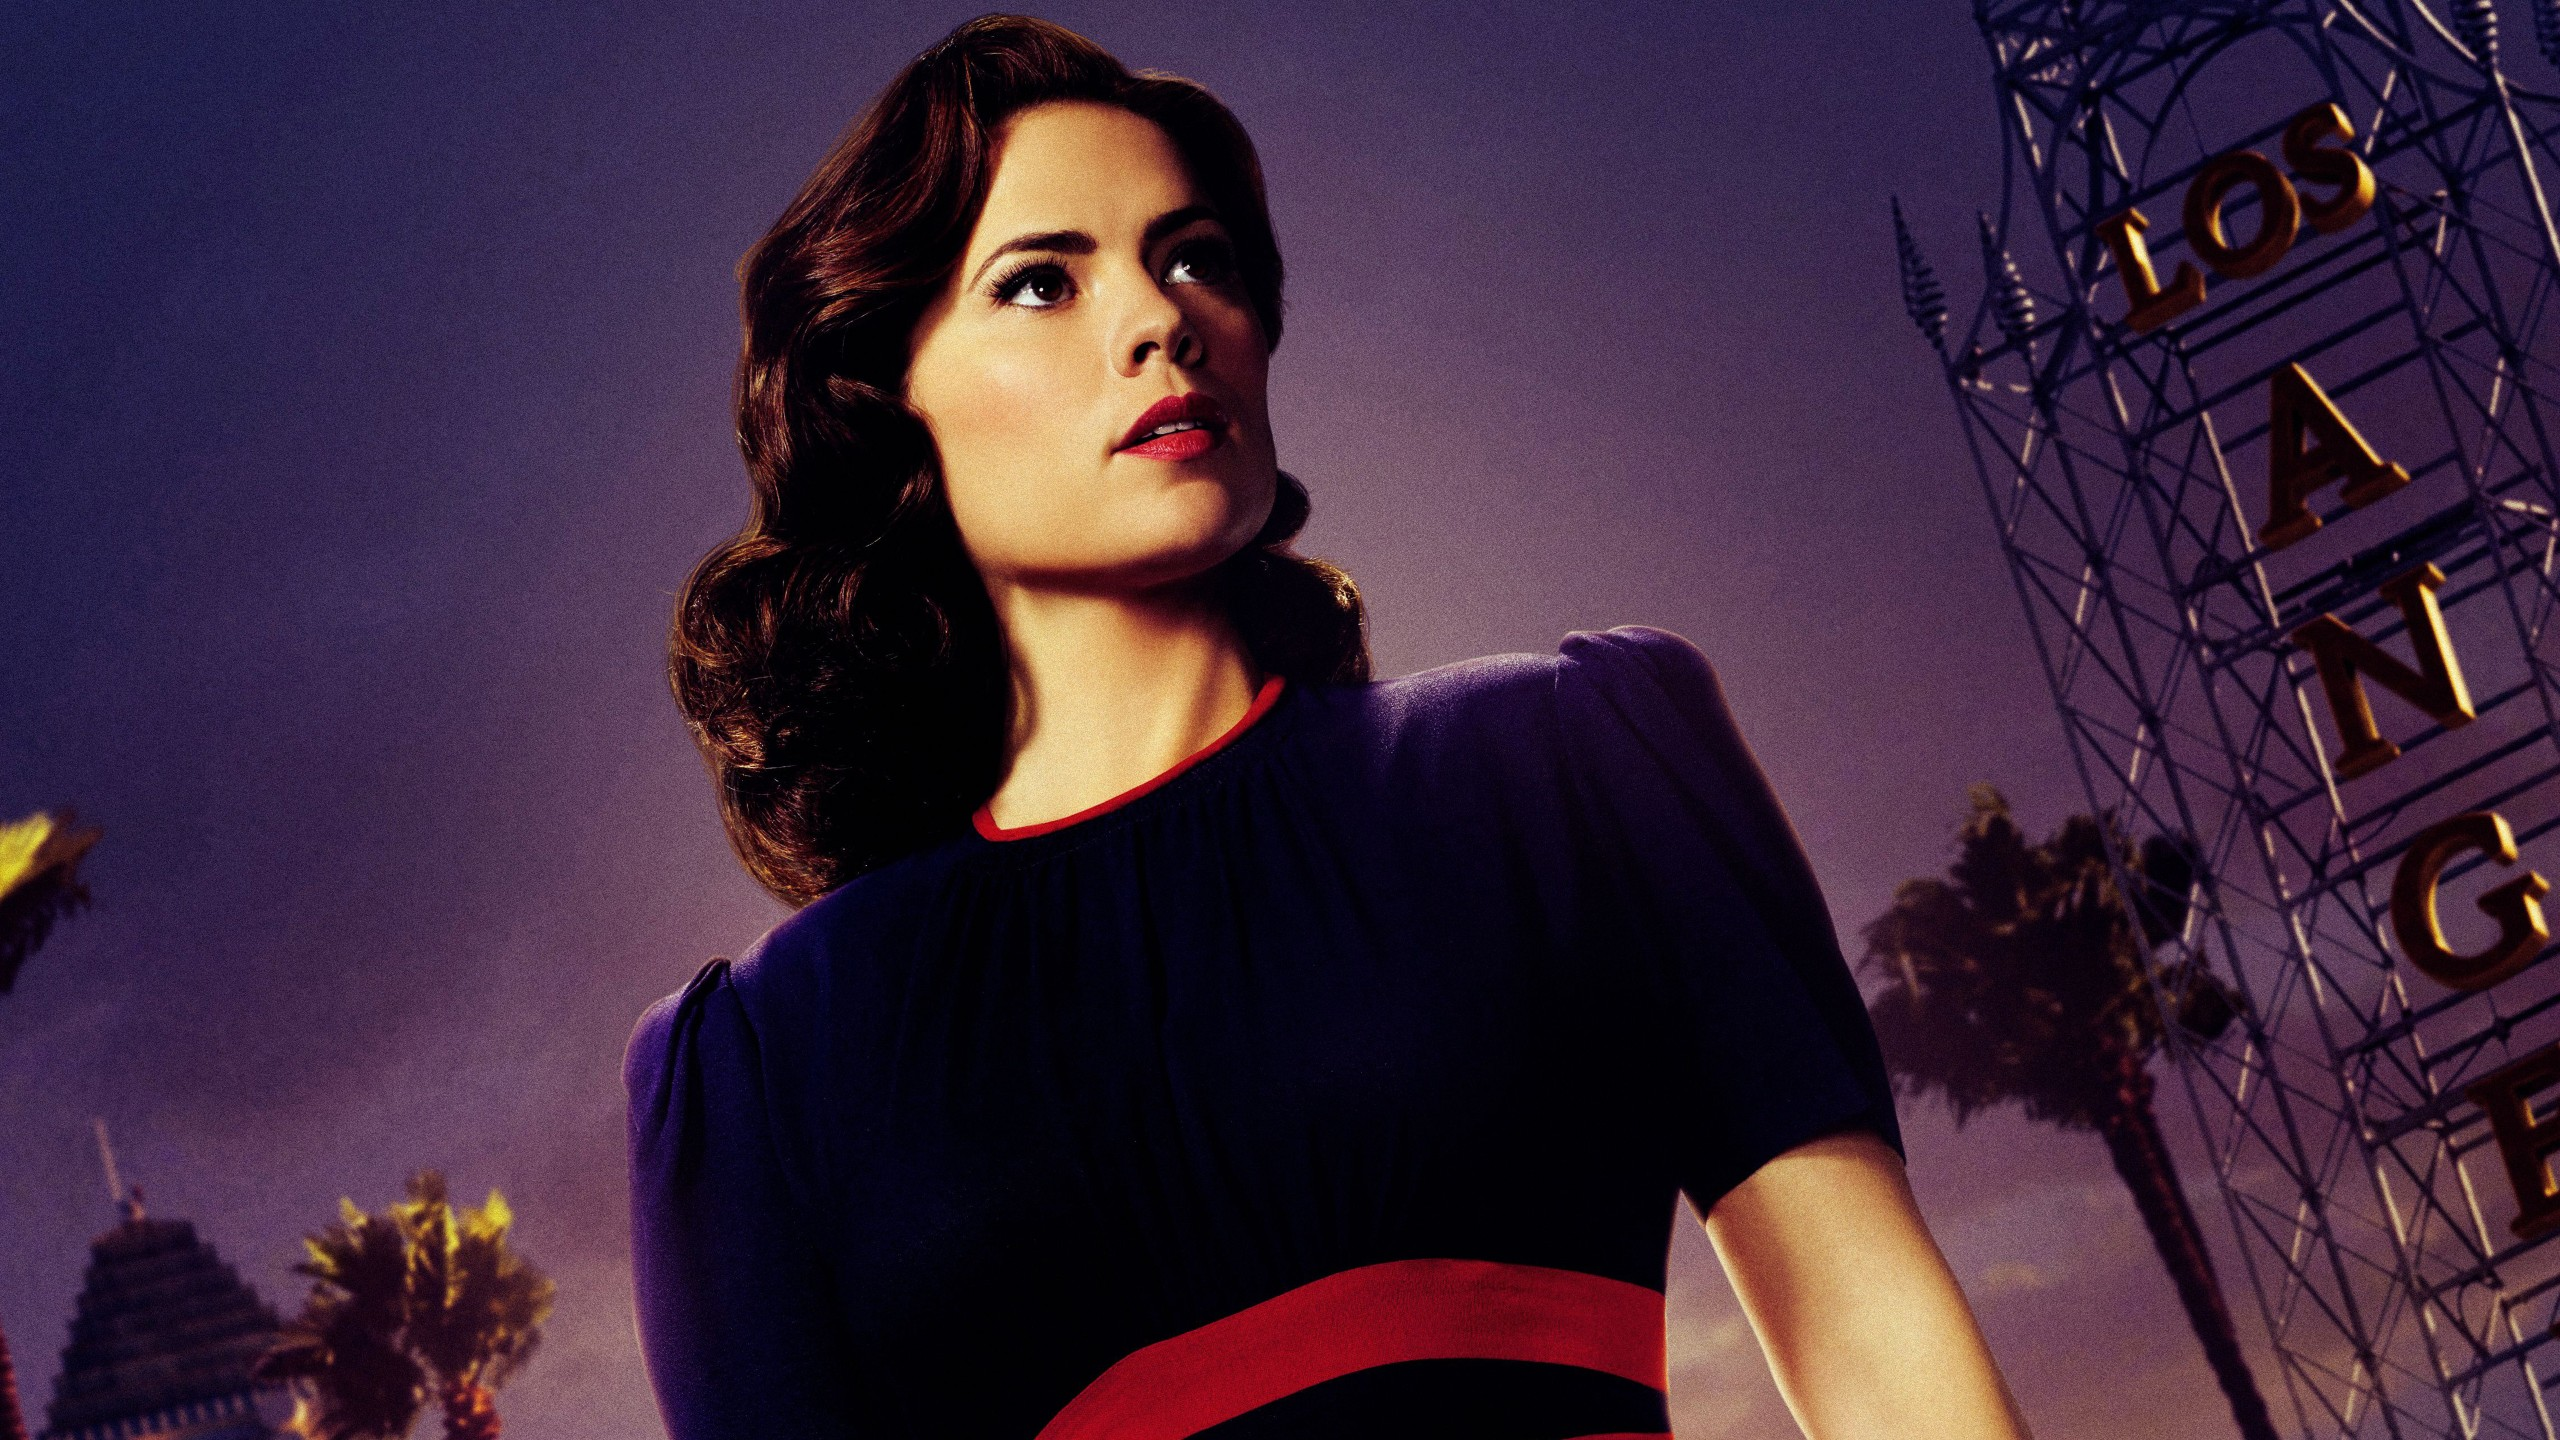 Hayley Atwell Marvels Agent Carter